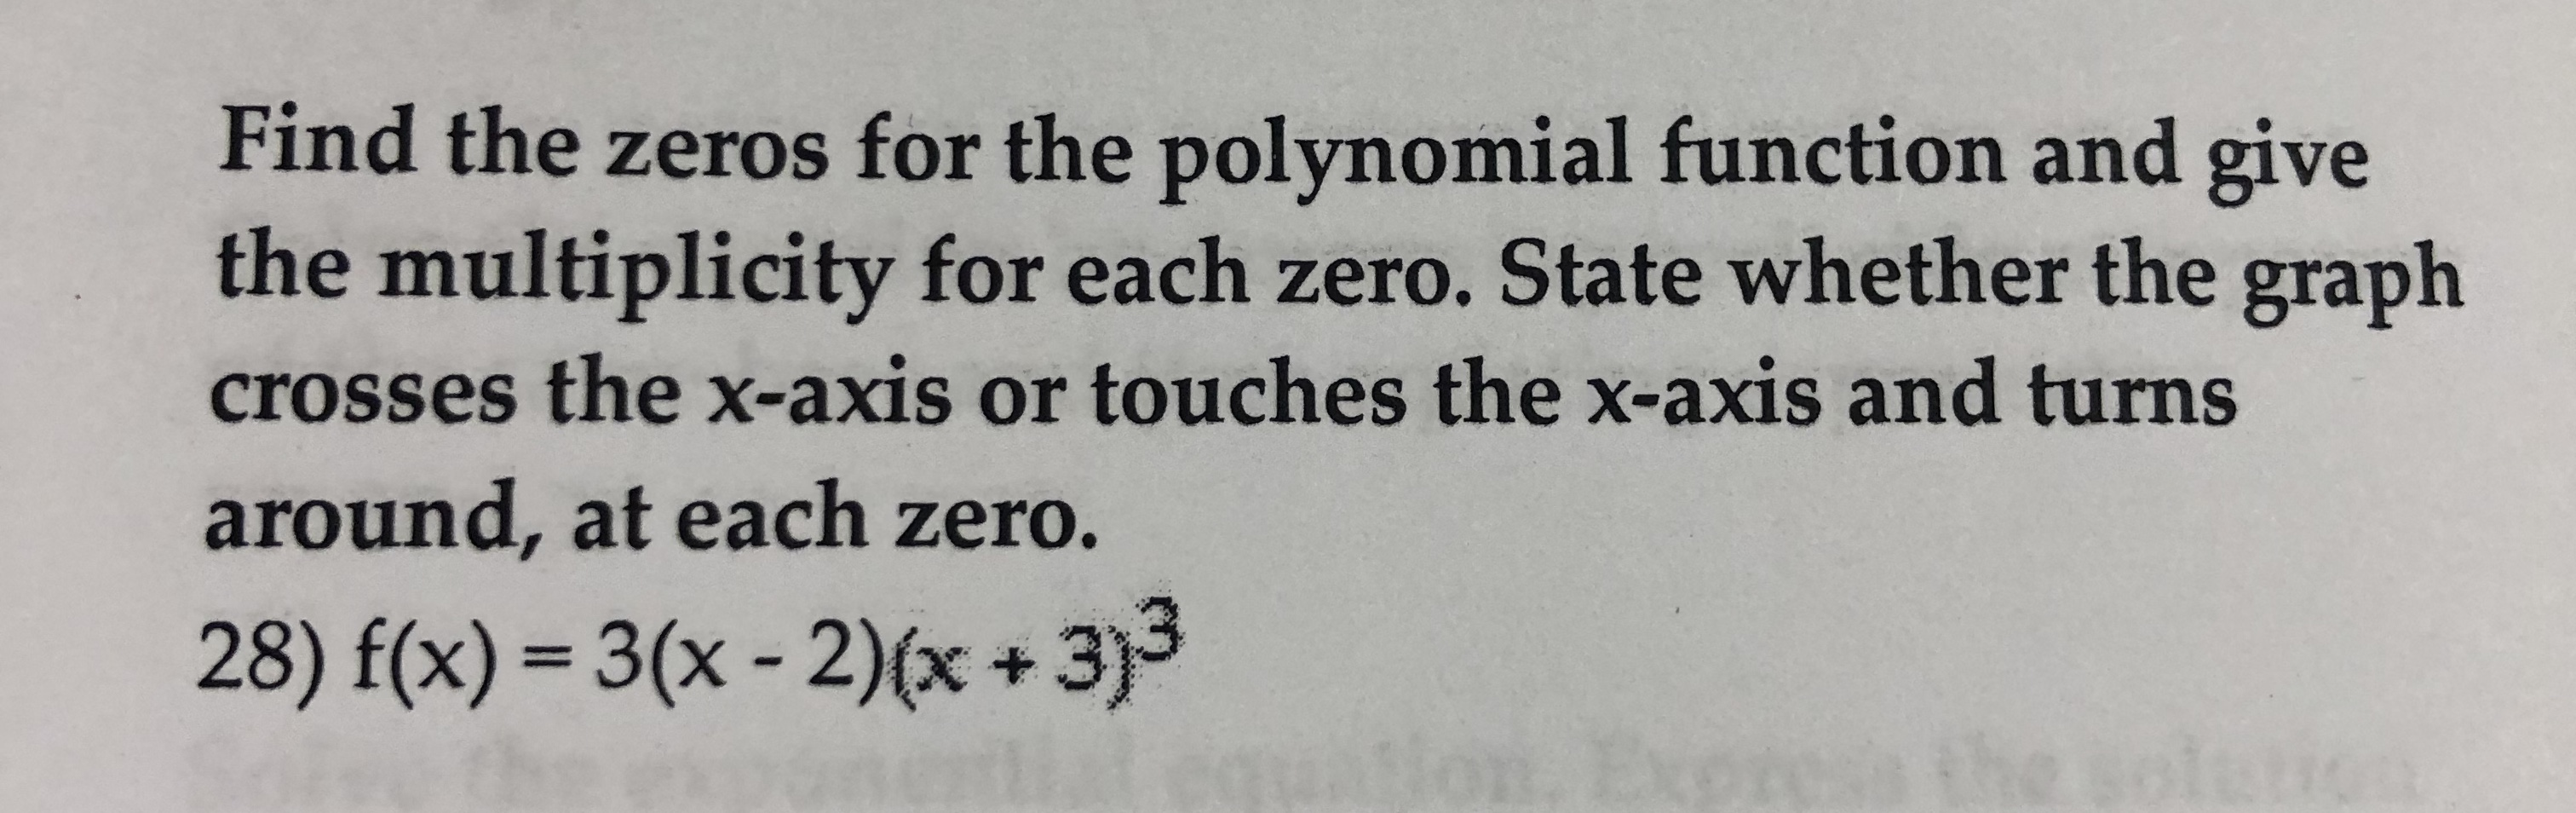 Find the zeros for the polynomial function and give the multiplicity for each zero. State whether the graph crosses the x-axis or touches the x-axis and turns around, at each zero. 28) f(x) 3(x-2)x+3)3